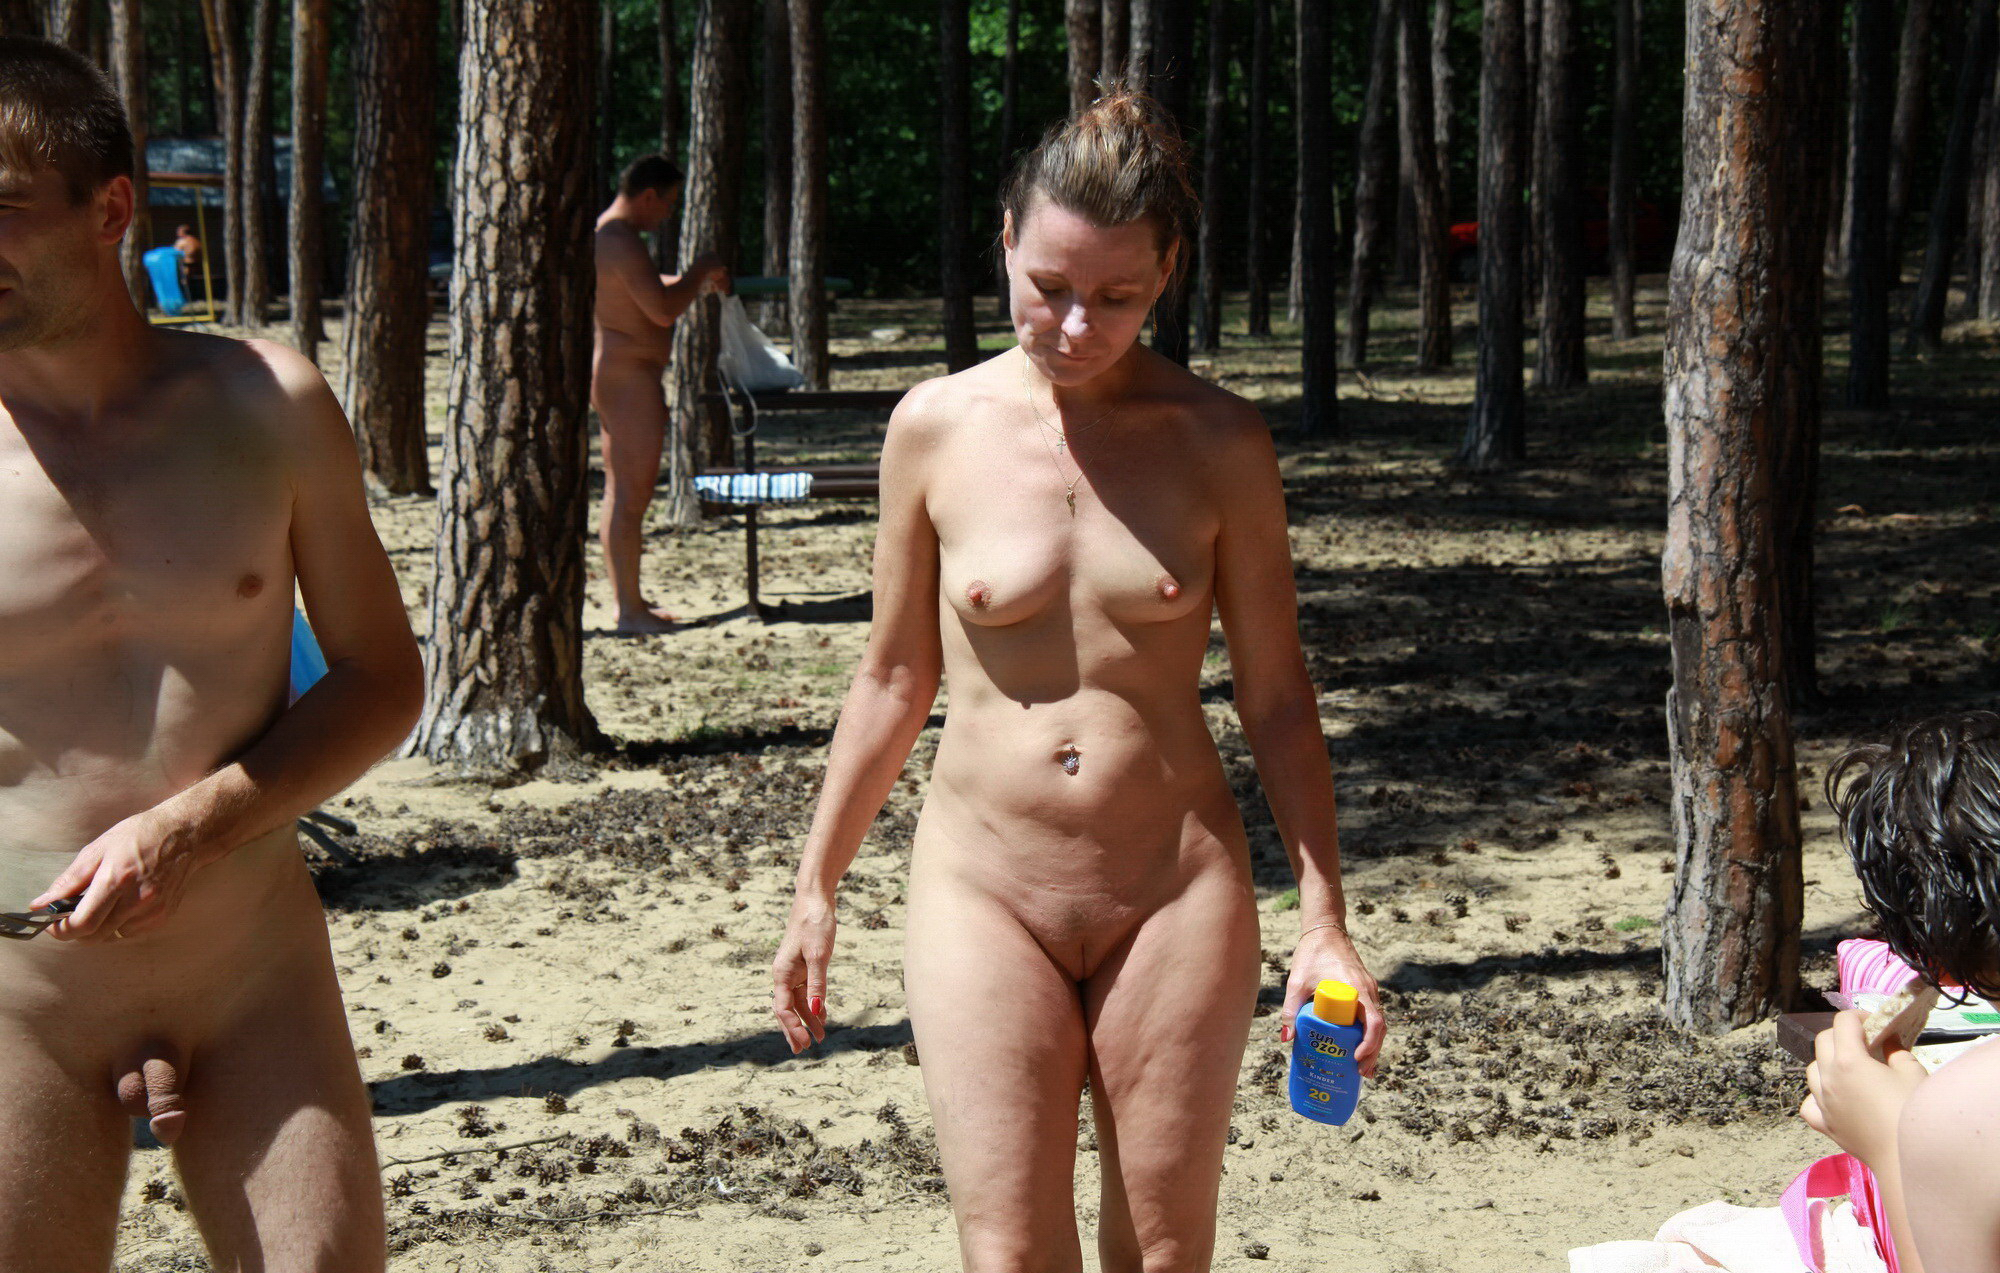 https://voyeurpapa.com/wp-content/uploads/2016/12/Nudists-family-nude-beach-51.jpg